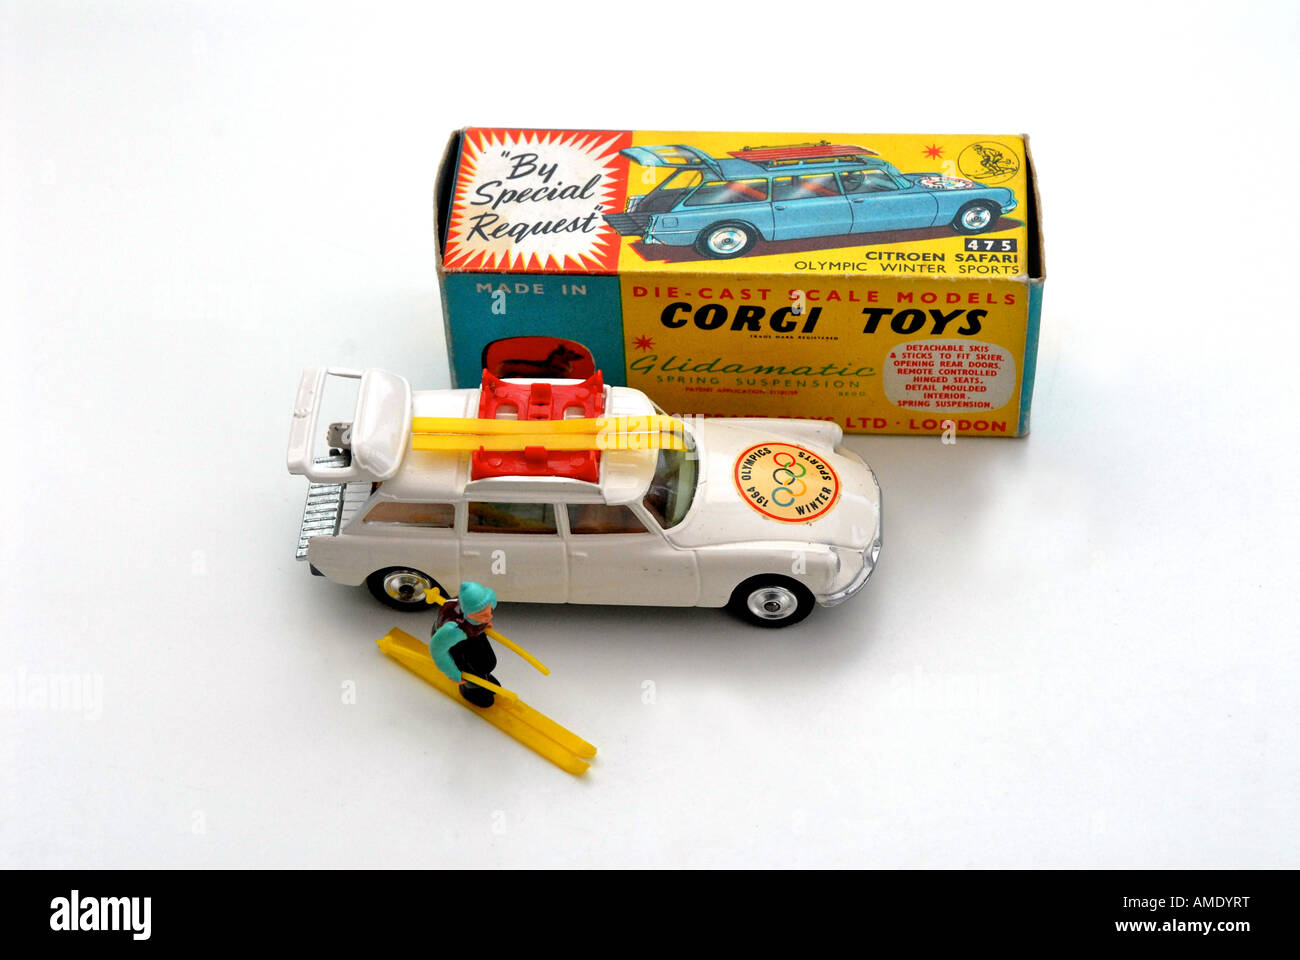 Vintage Toy Car Stock Photos & Vintage Toy Car Stock Images - Alamy